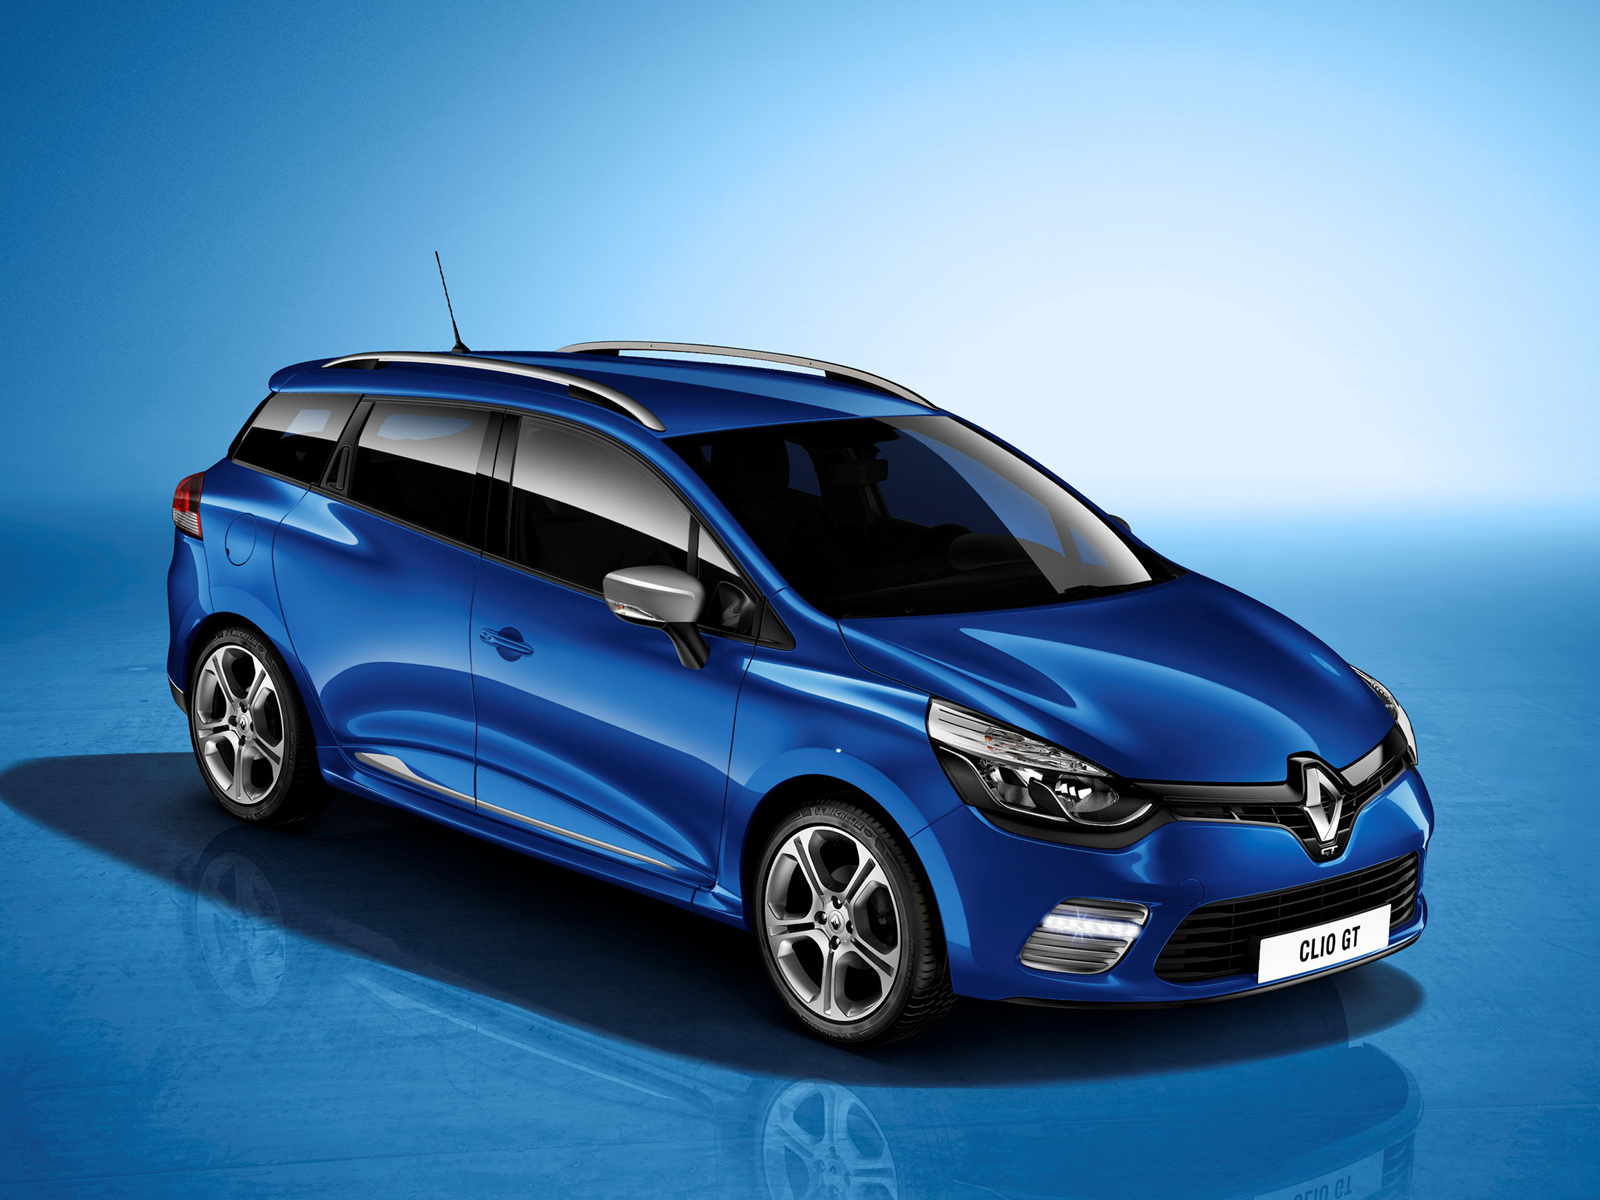 renault clio gt 2013 hatch sporter renault autopareri. Black Bedroom Furniture Sets. Home Design Ideas